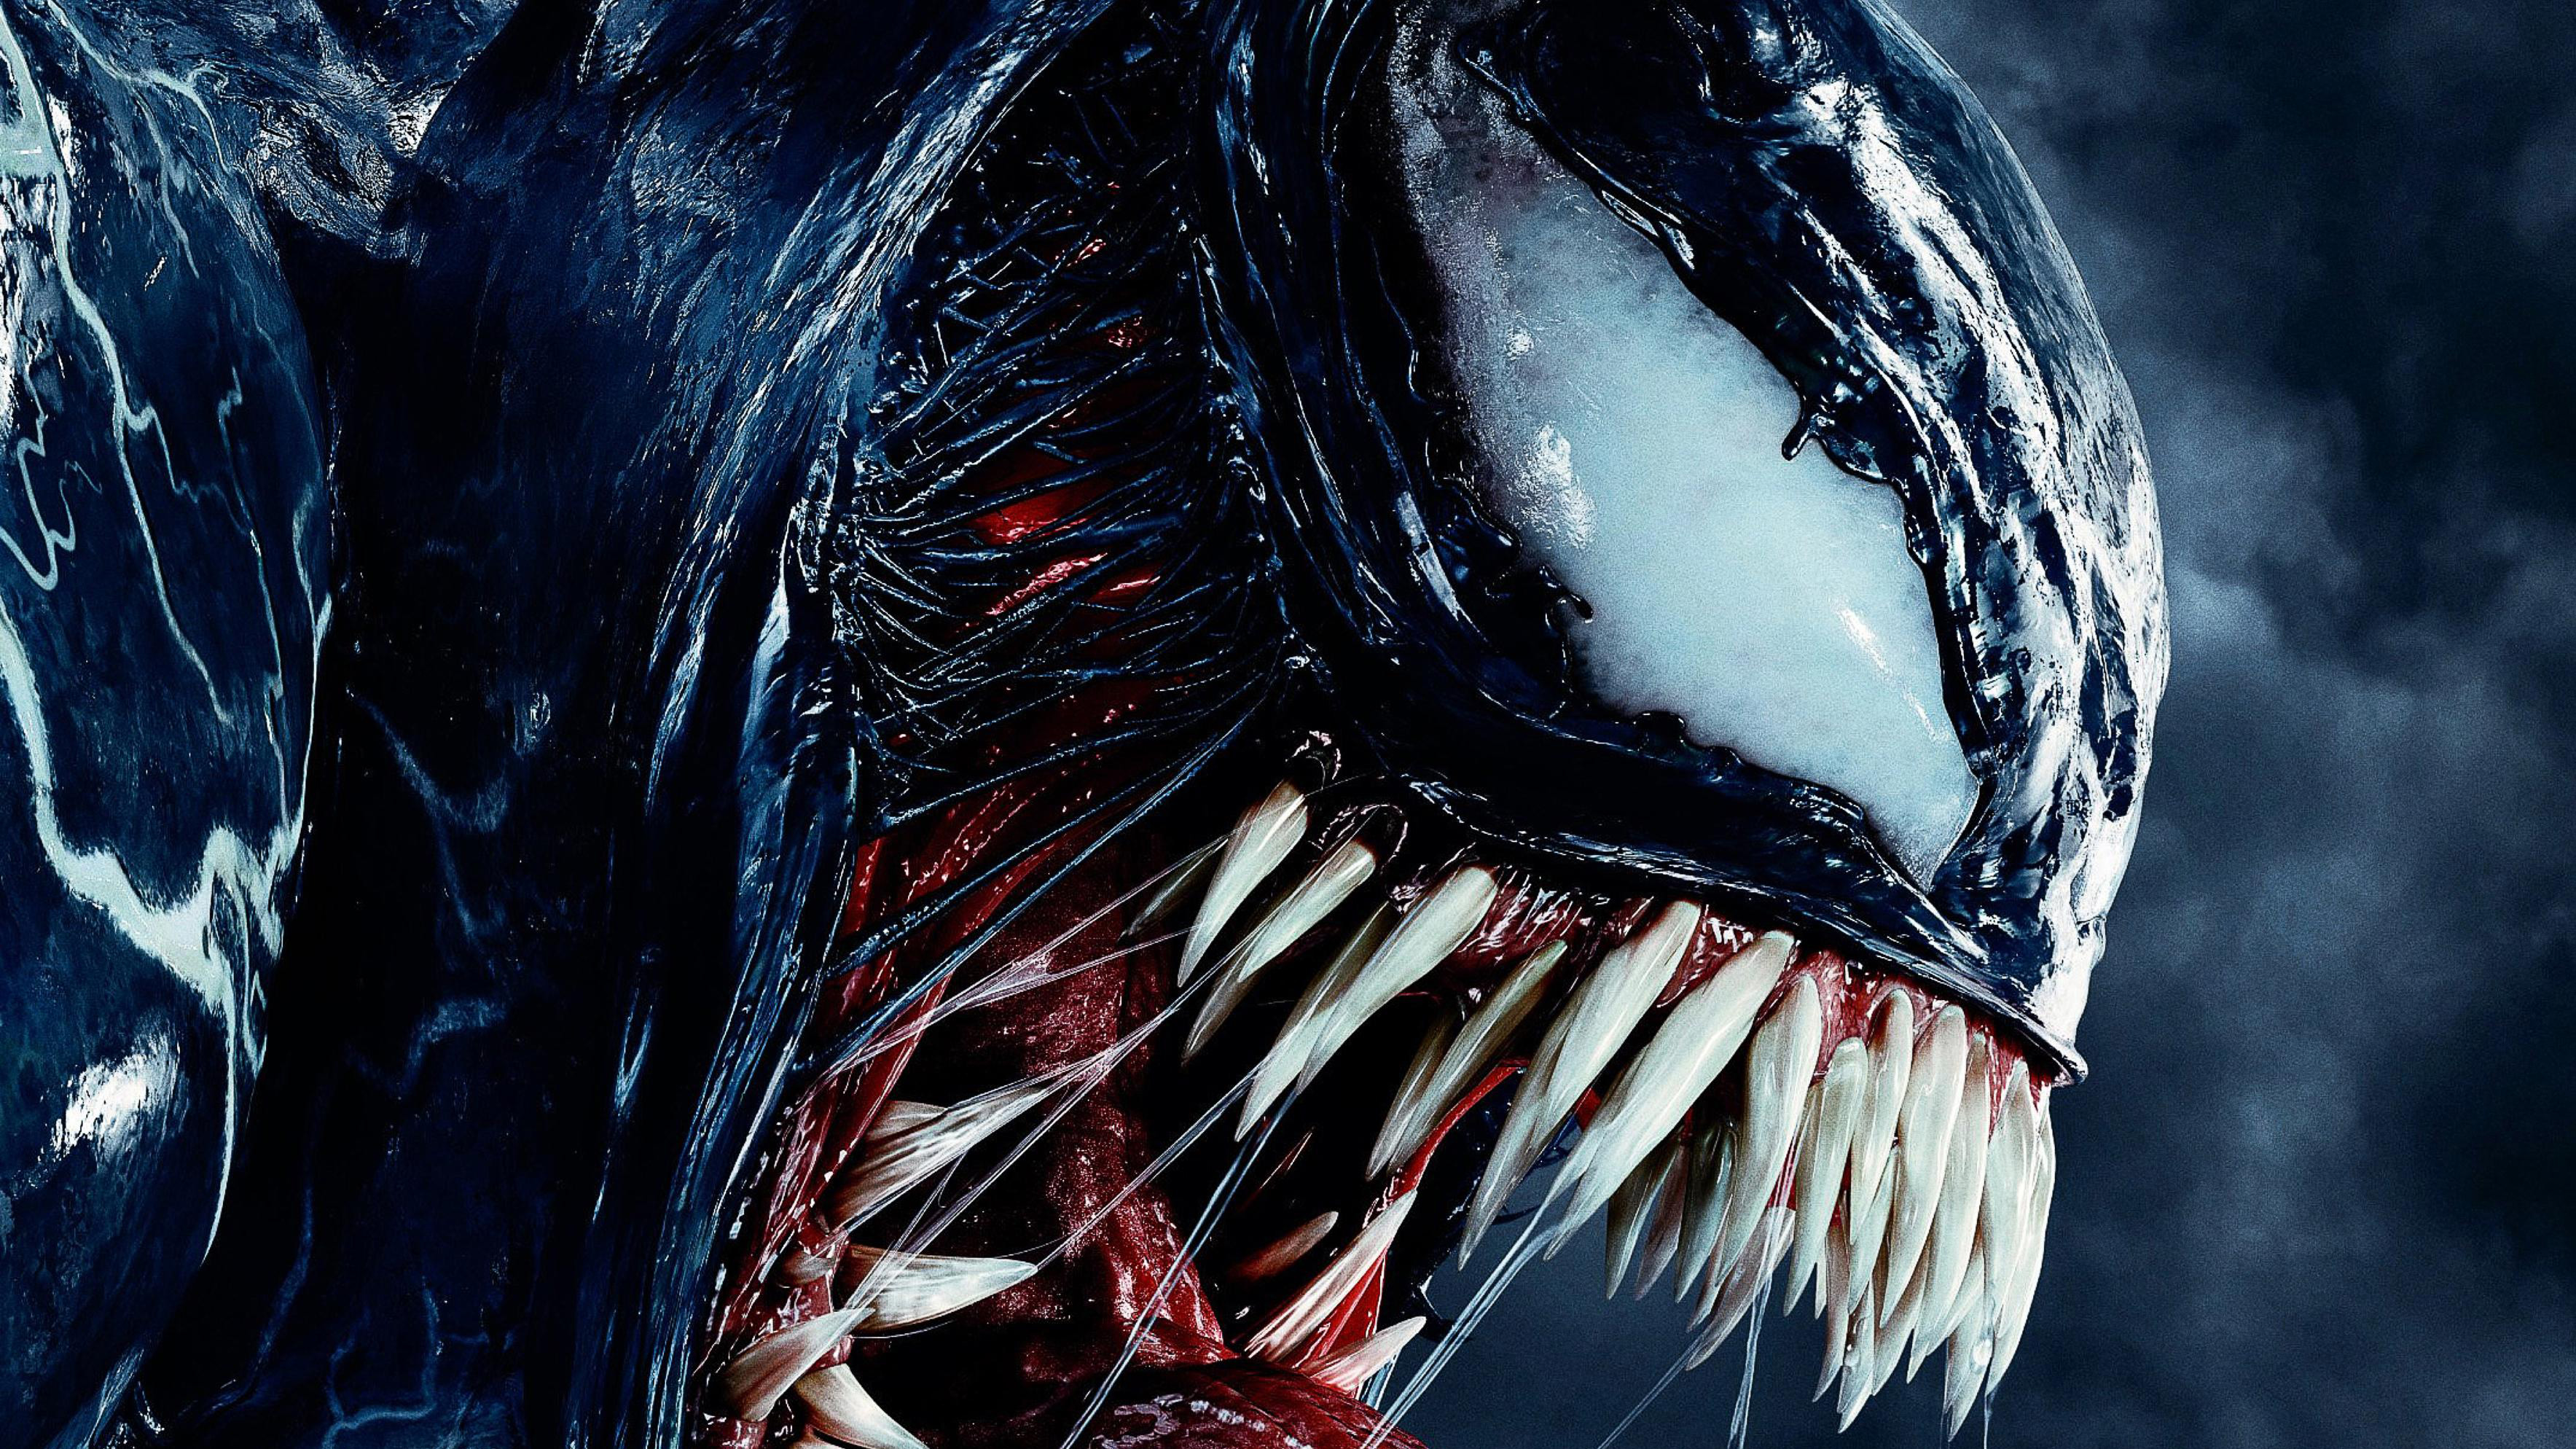 Venom Movie Japanese Poster Hd Movies 4k Wallpapers Images